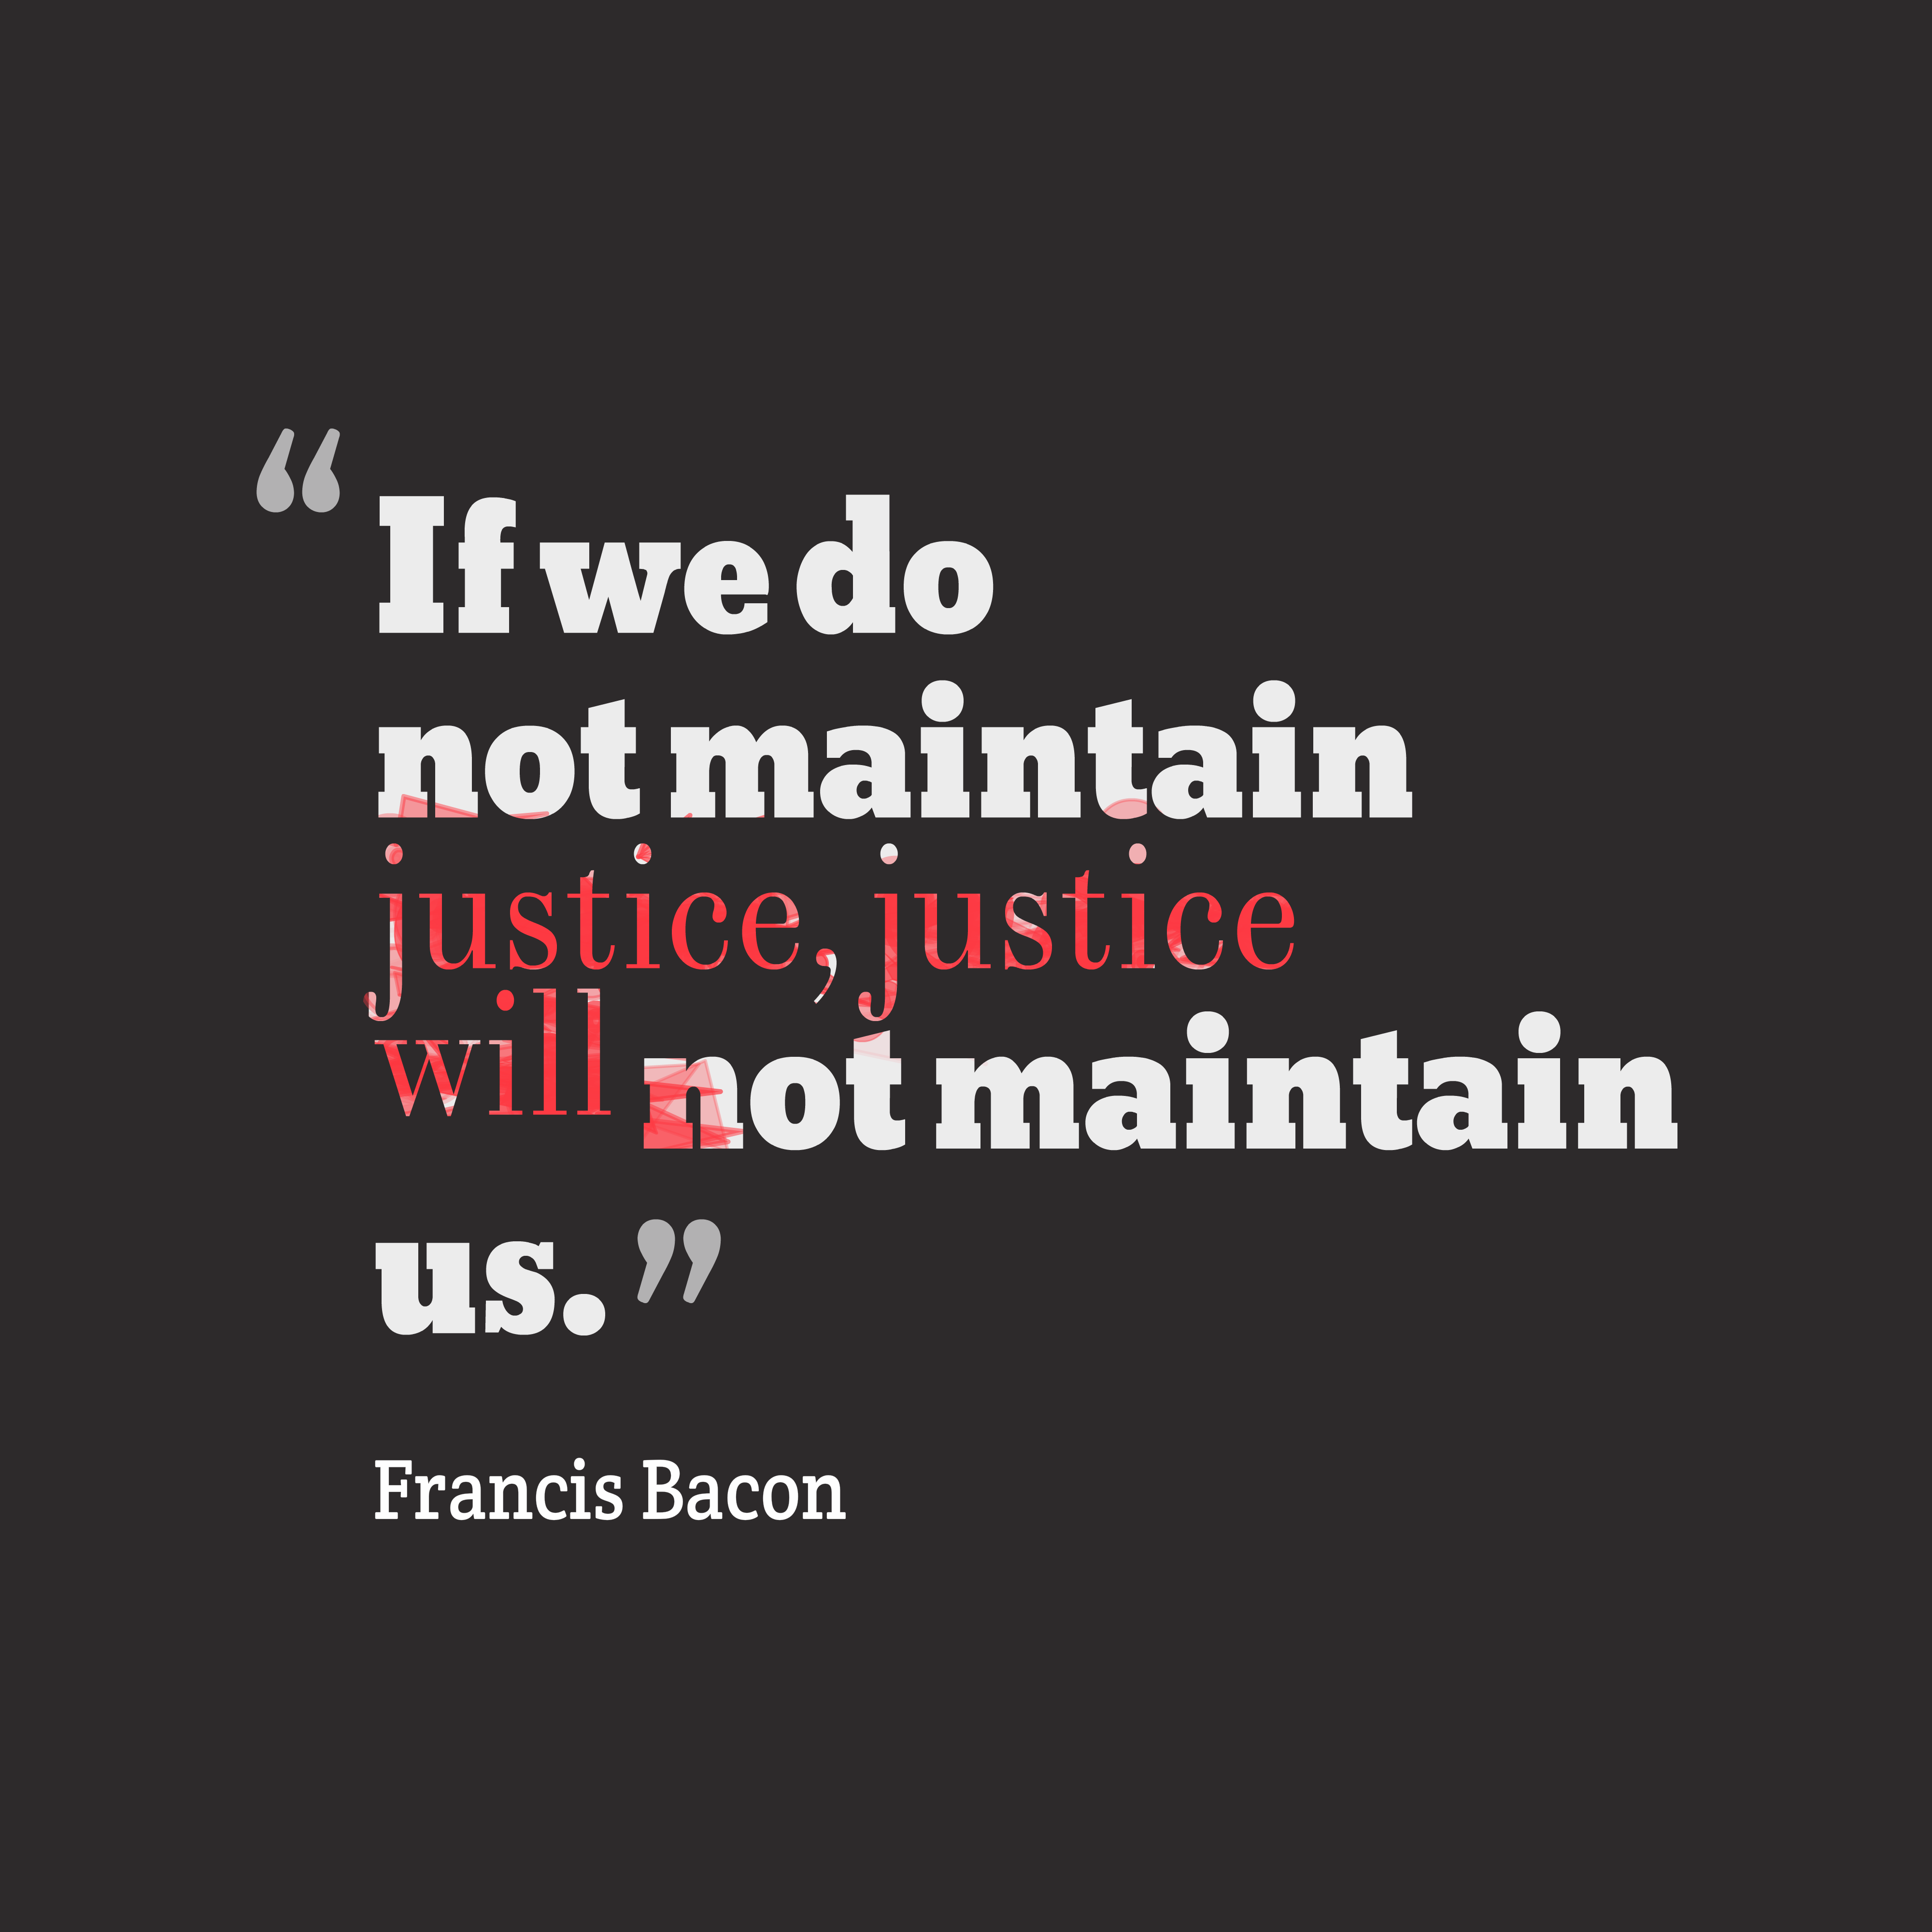 Francis Bacon Quote About Justice